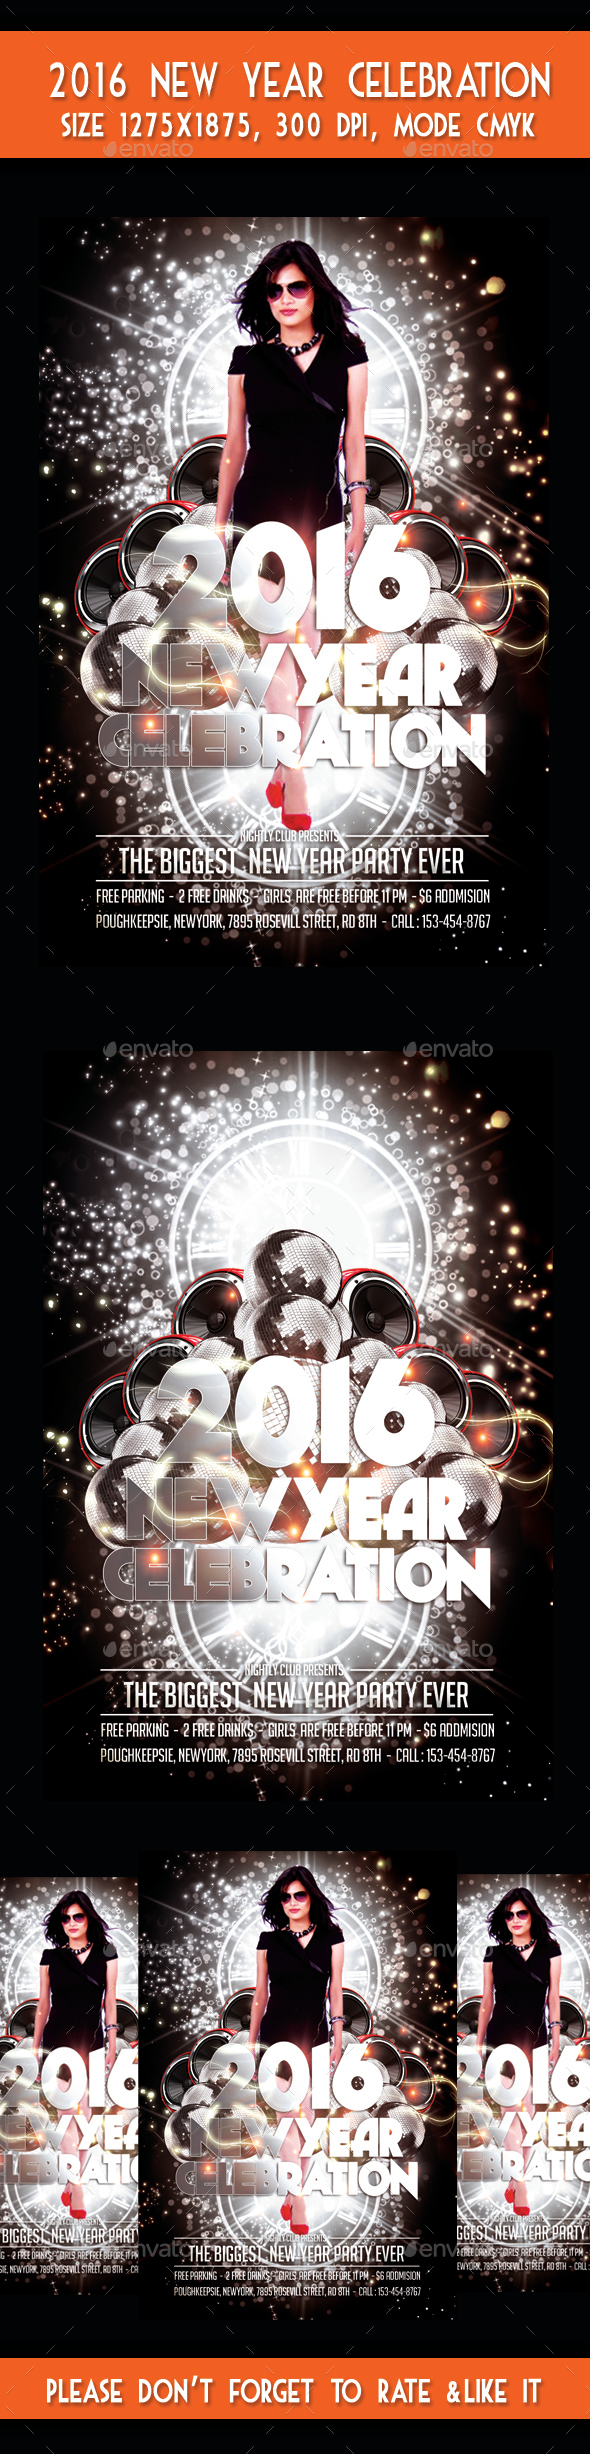 New Year 2016 Celebration Party Flyer - Flyers Print Templates